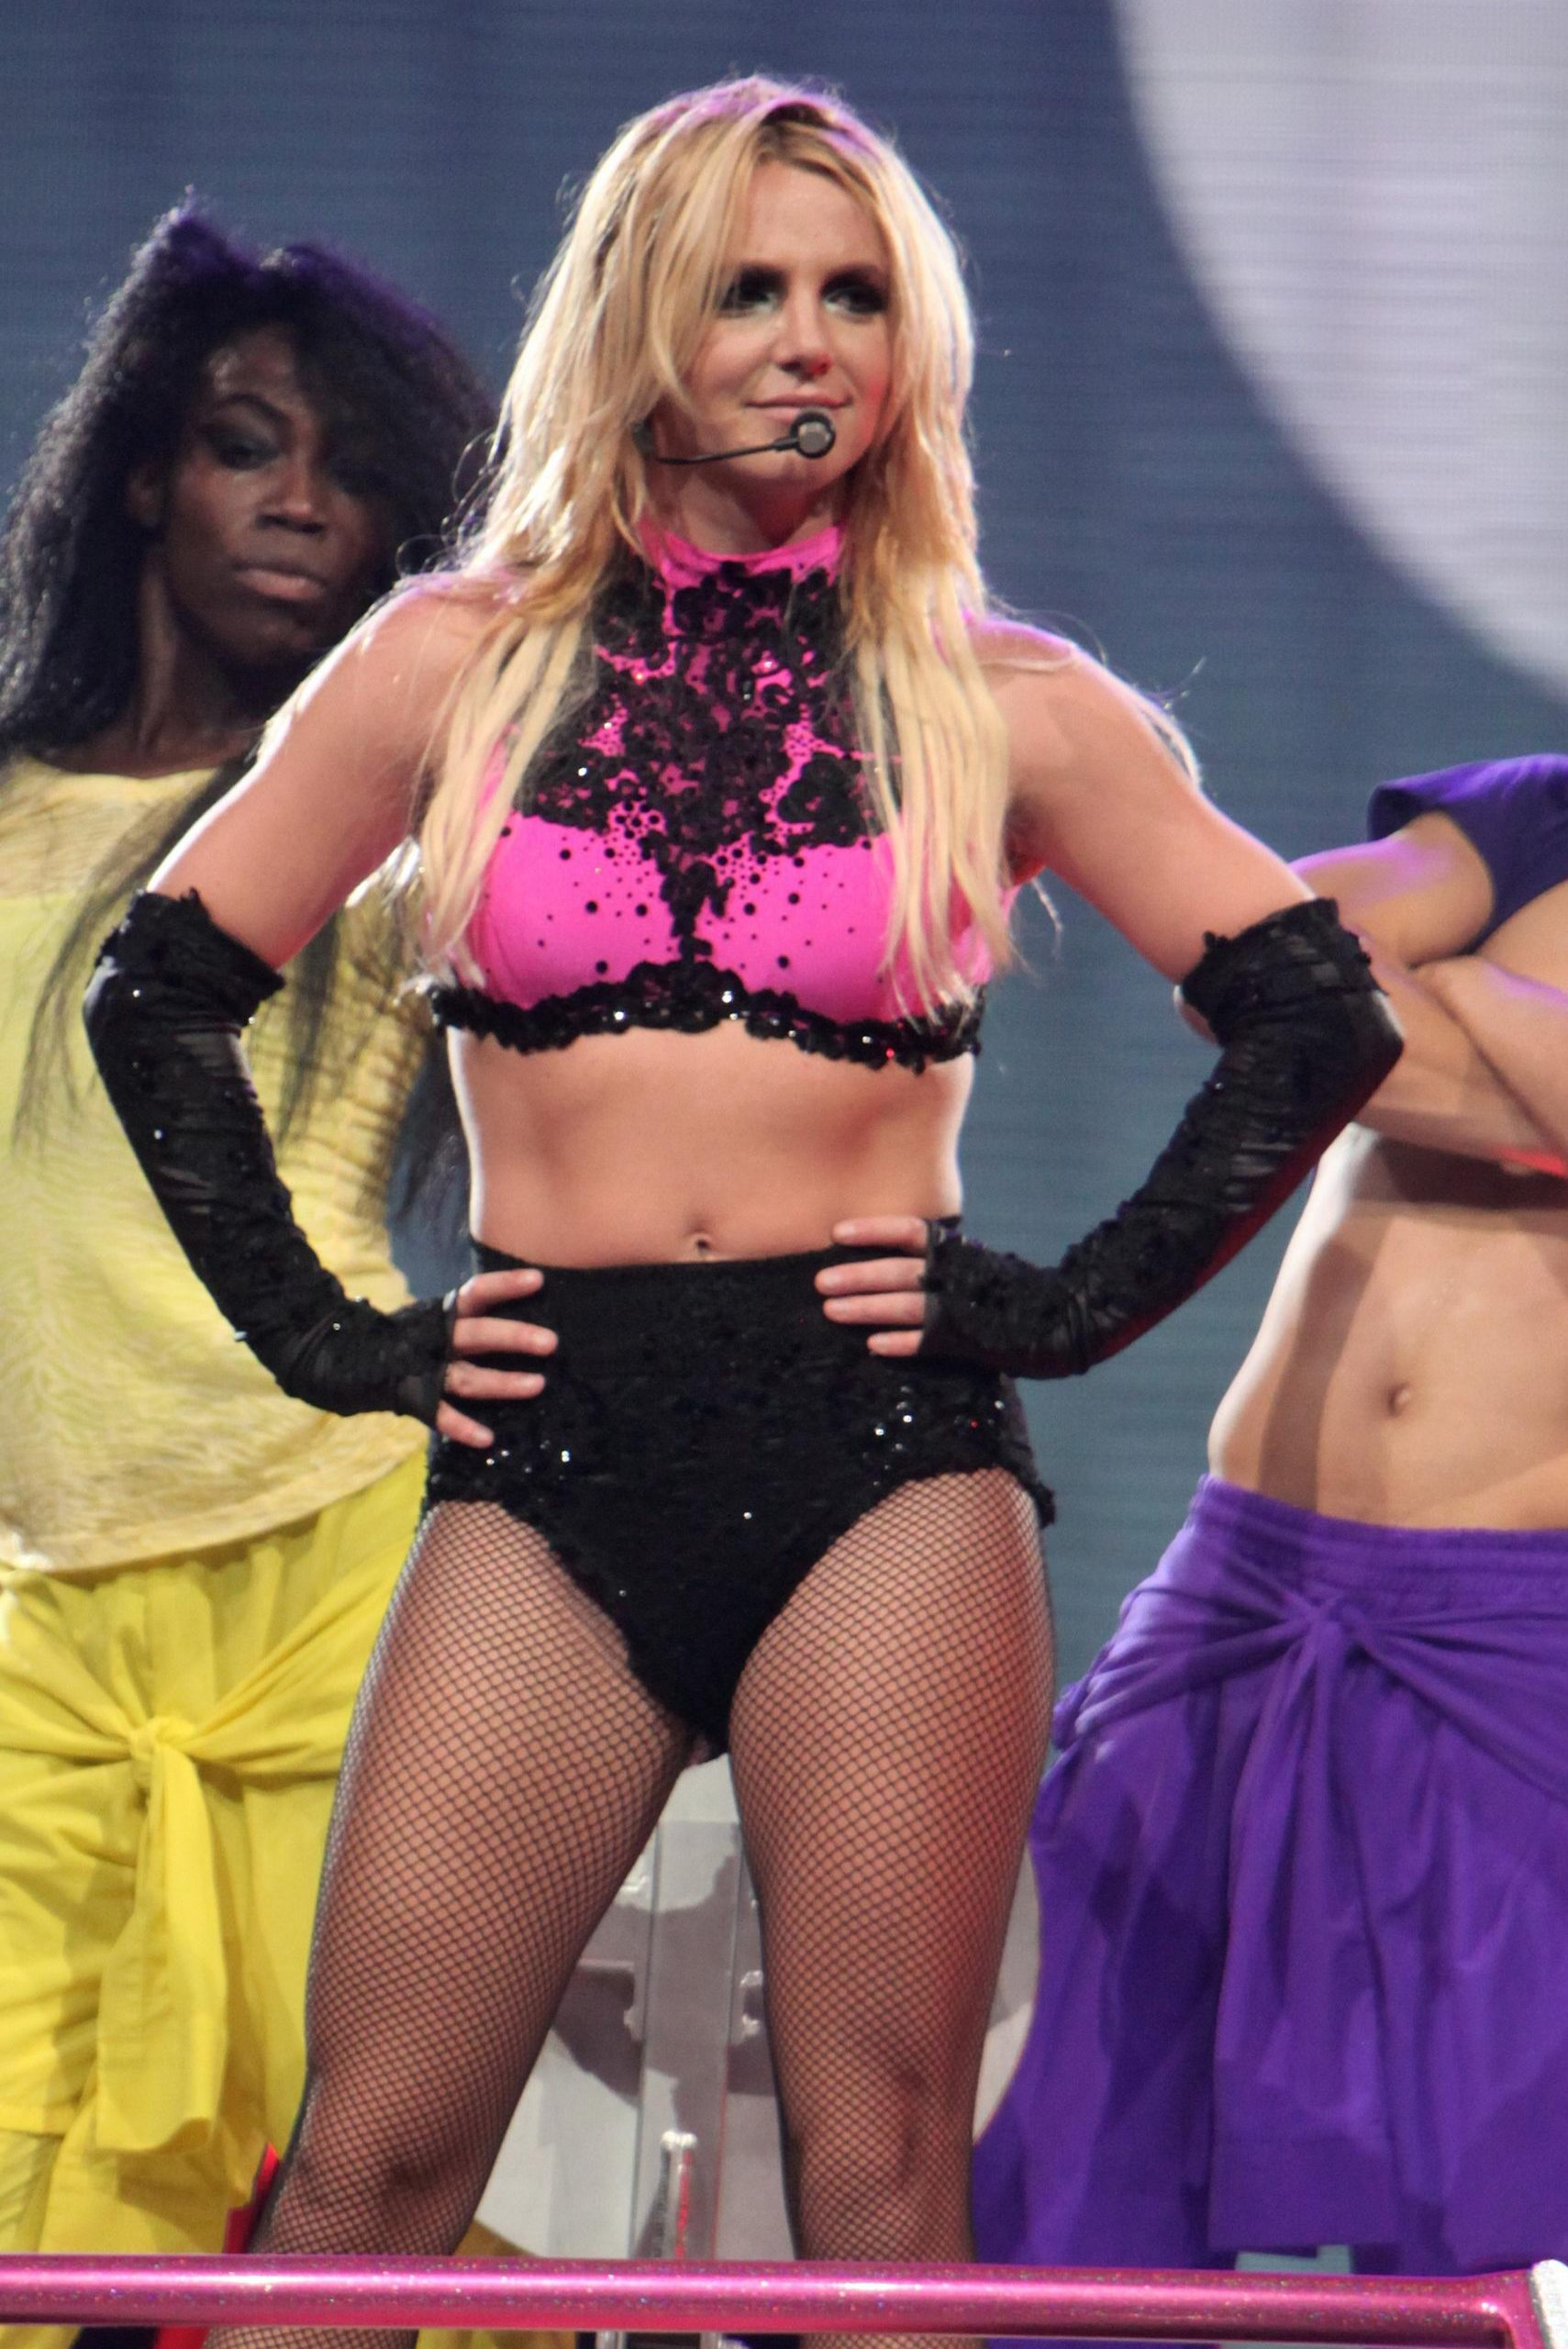 britney spears vagina and ass looks hot in concert